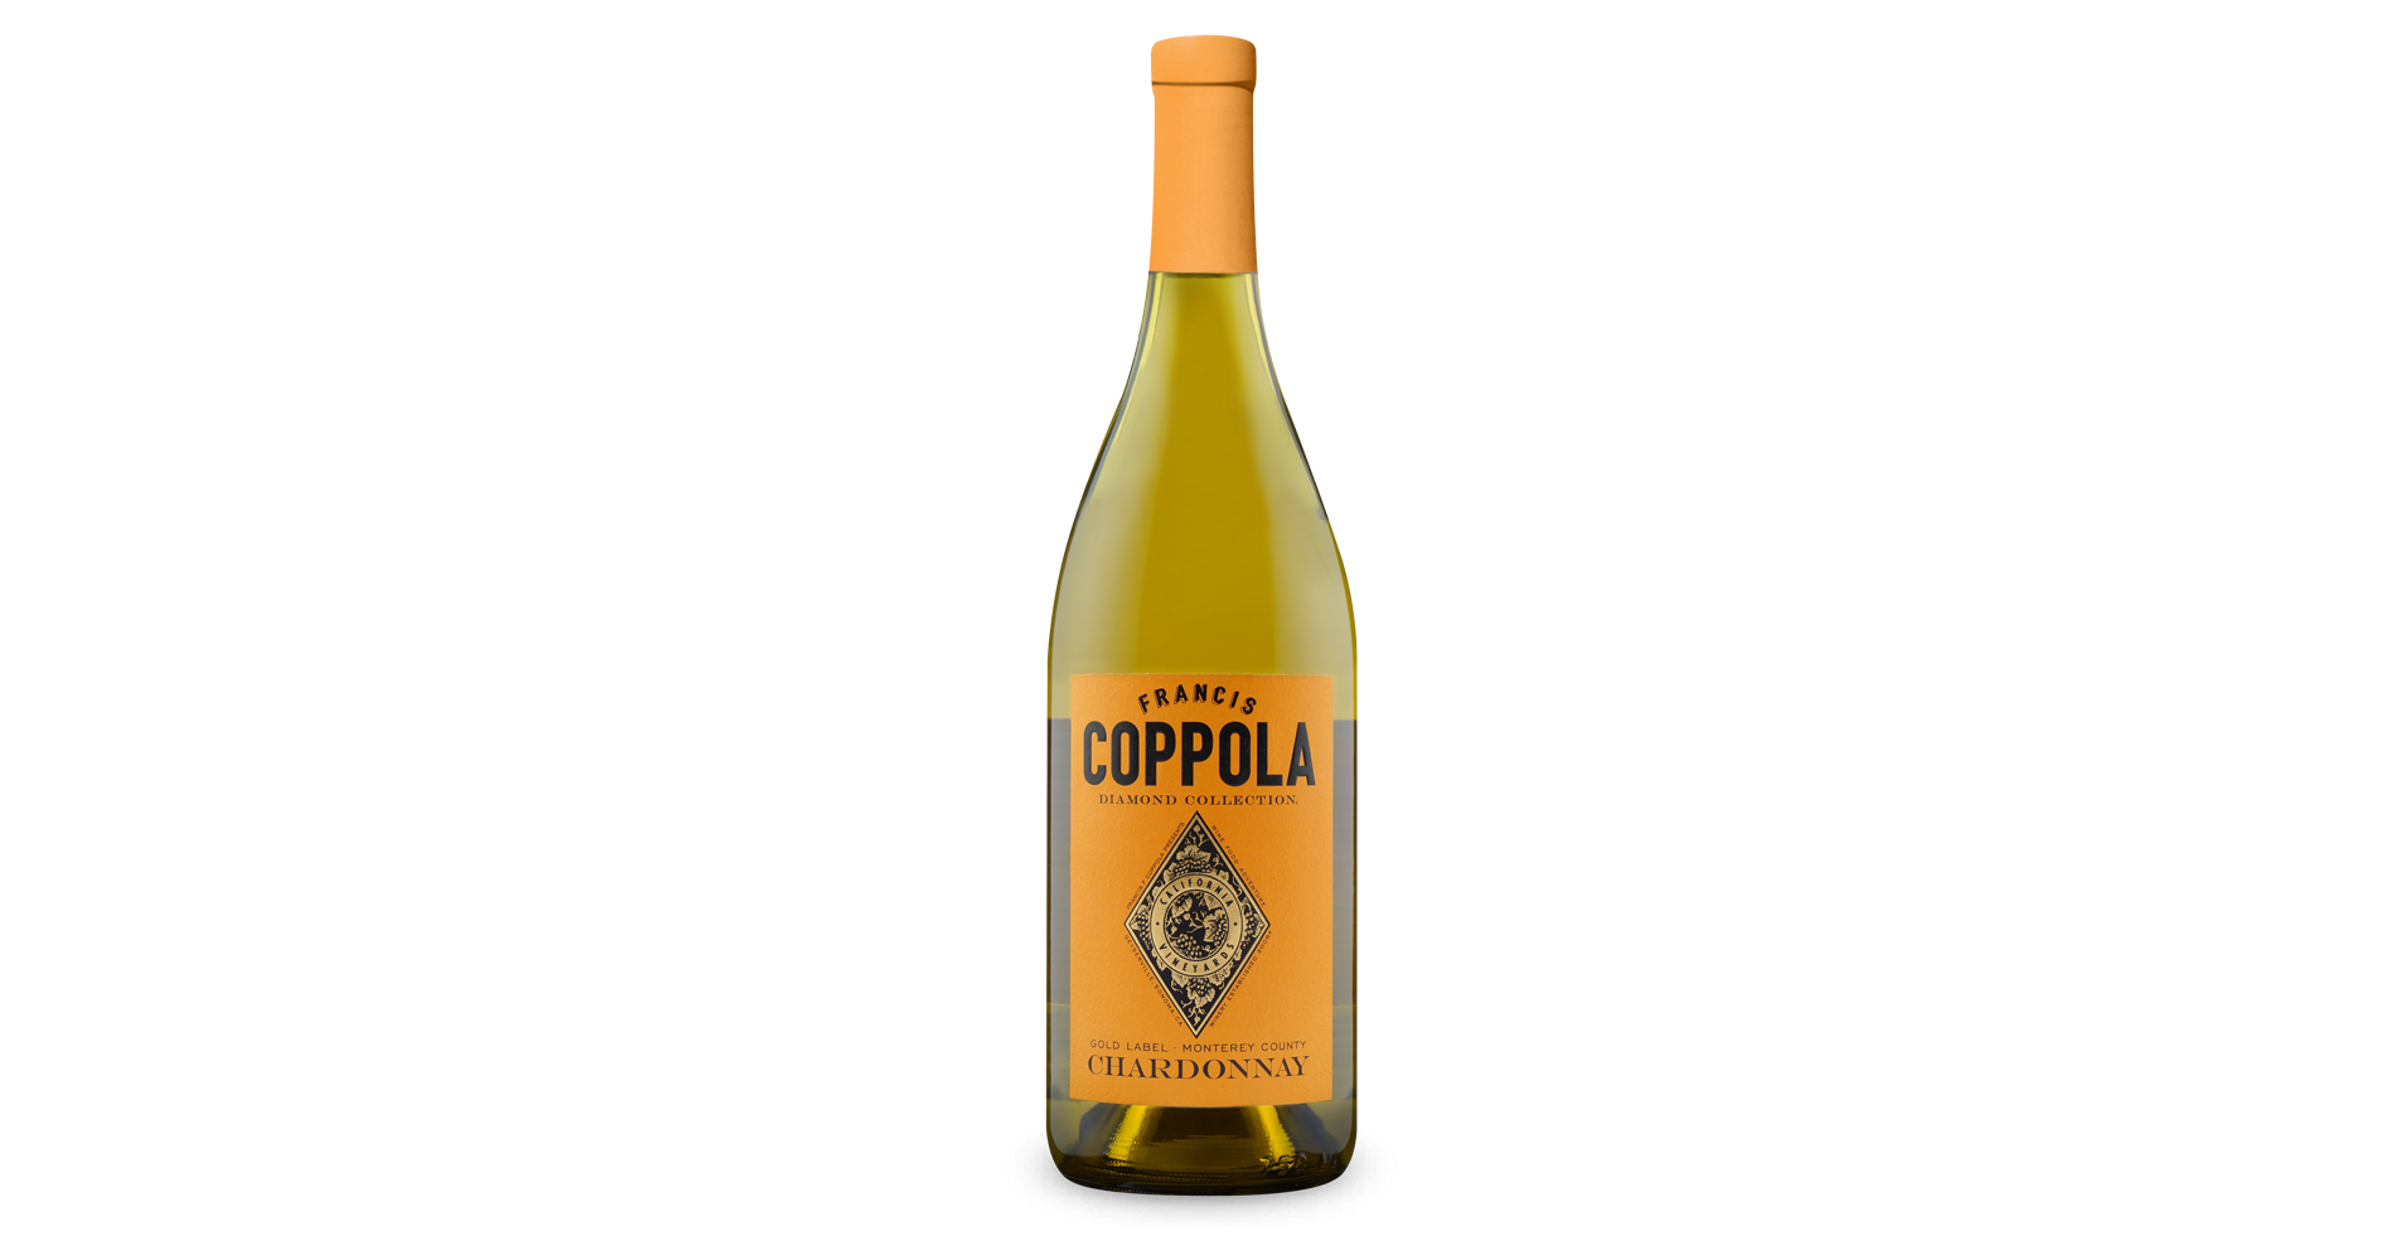 It is an image of Challenger Francis Coppola Gold Label Chardonnay